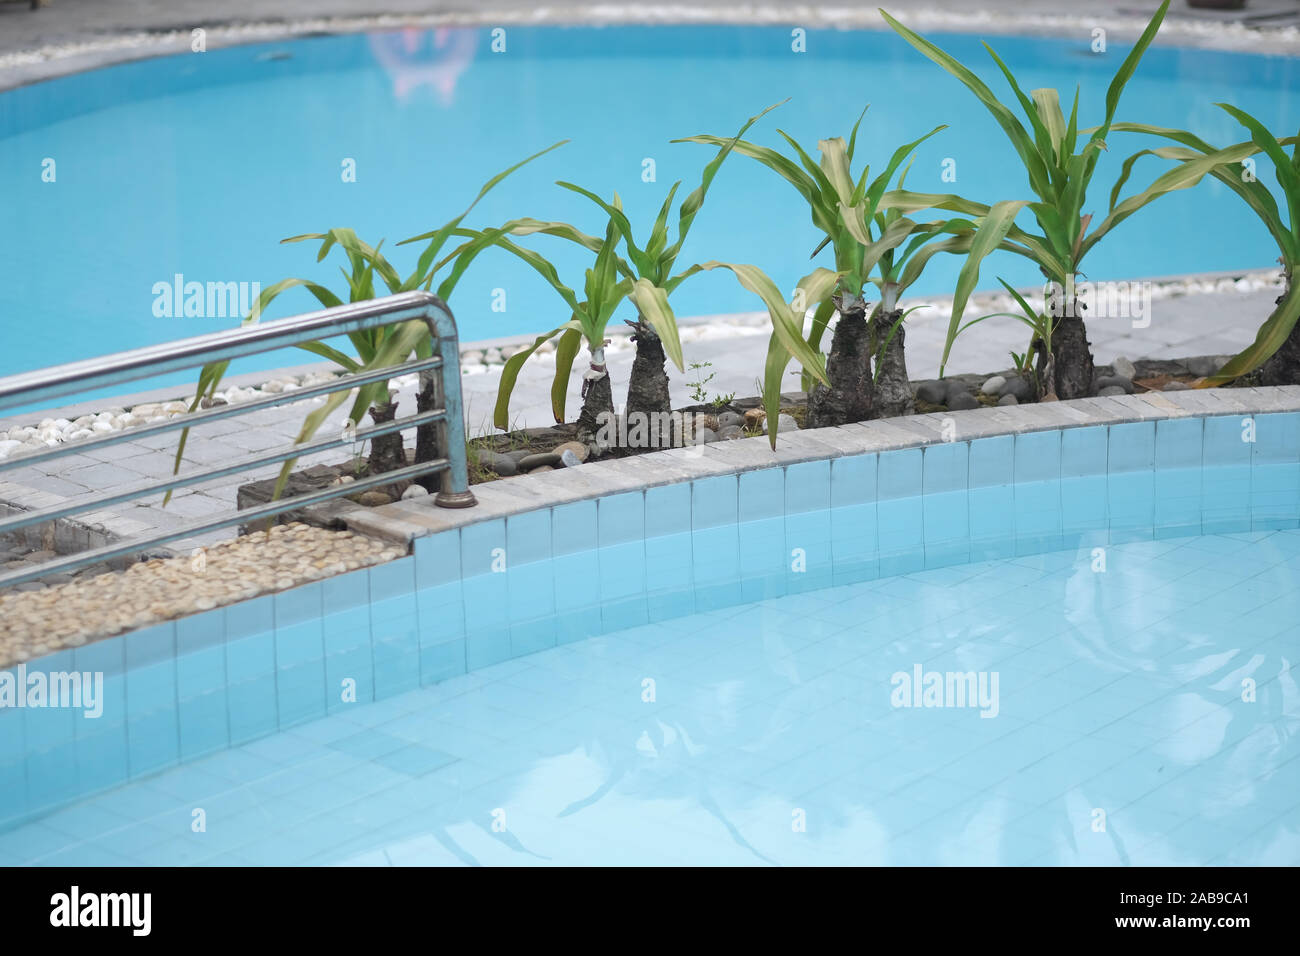 Swimming Pool With Clear Blue Water And Exotic Plants With Long